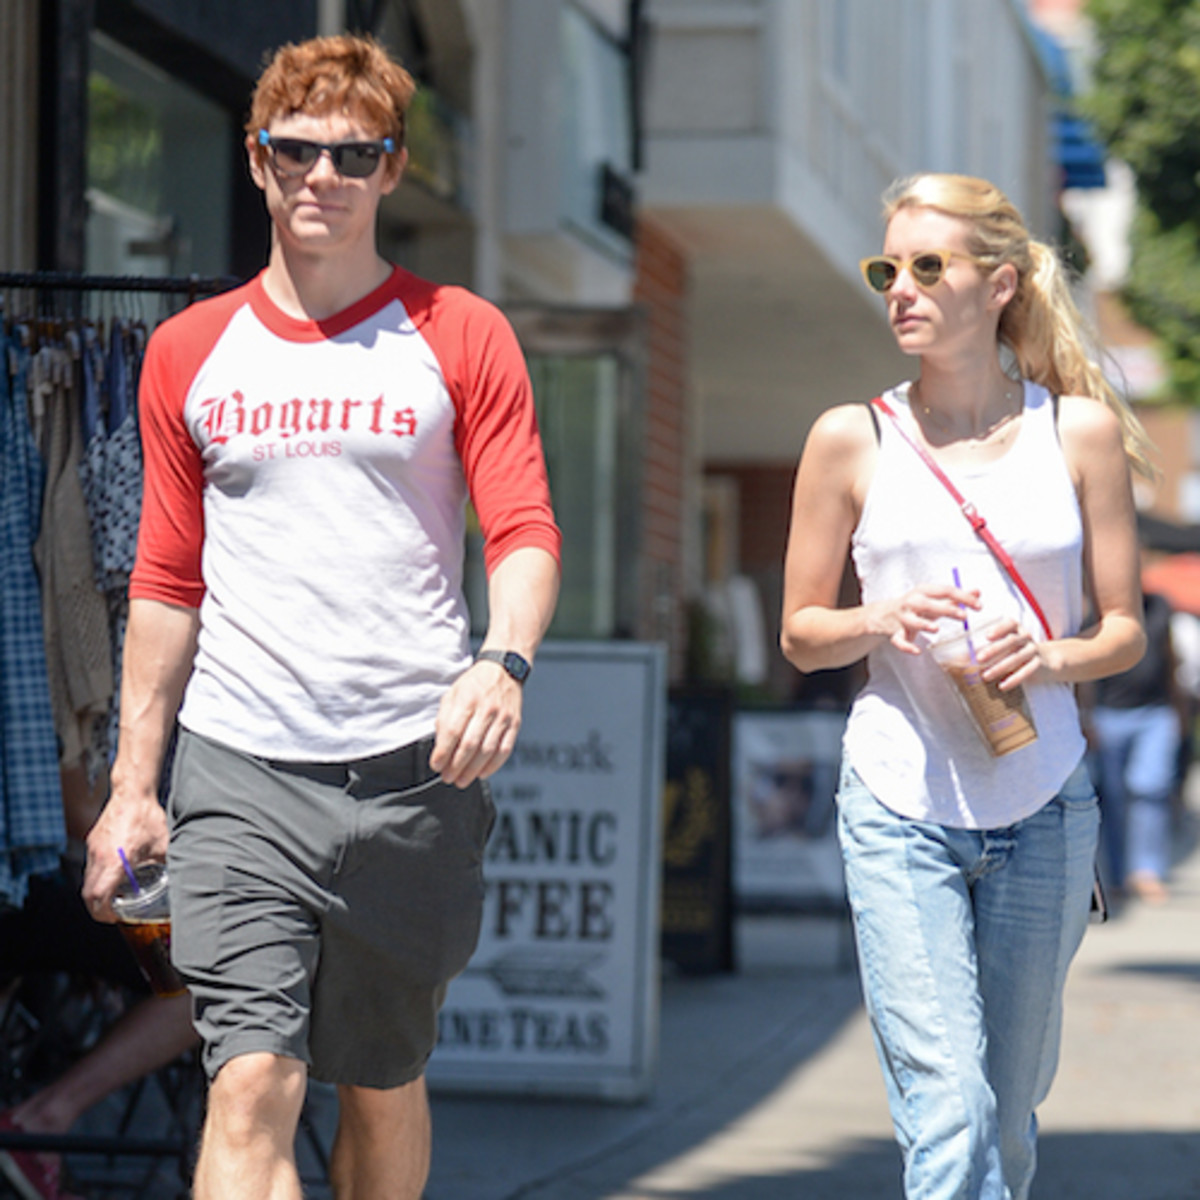 Evan Peters and Emma Roberts. The classic example of an on and off relationship.